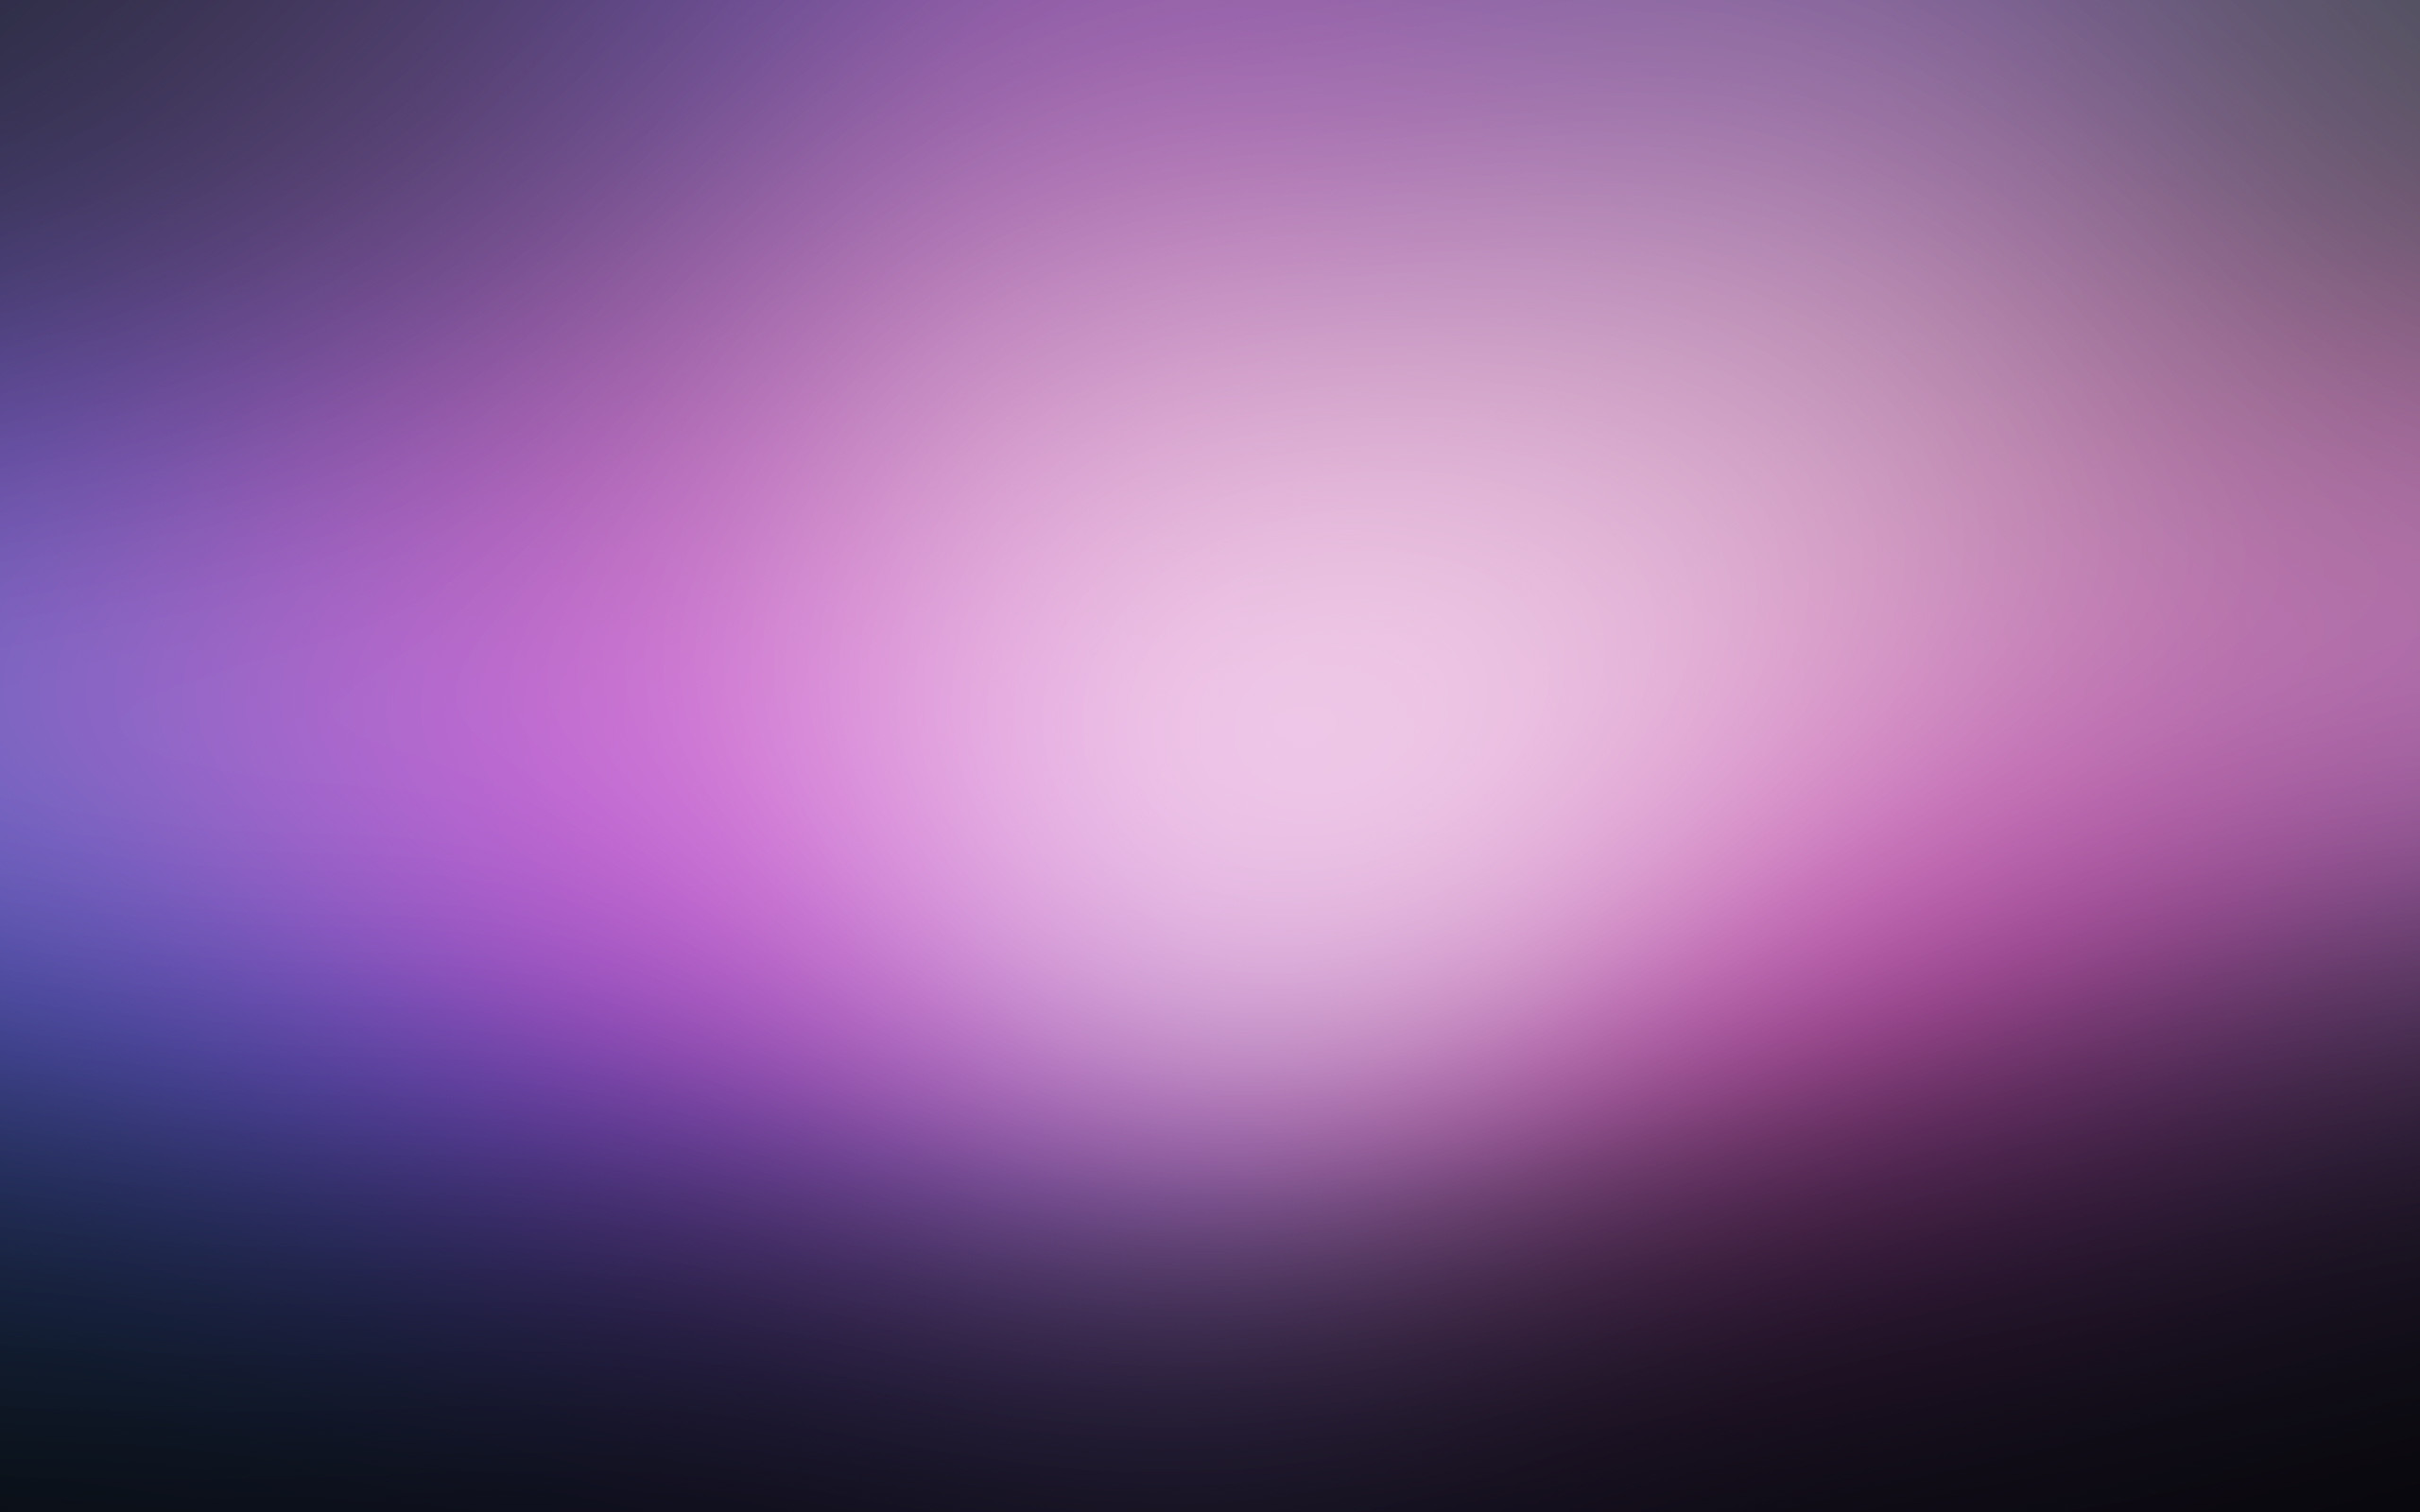 2560x1600 HD Purple Wallpapers Wallpapers, Backgrounds, Images, Art Photos.